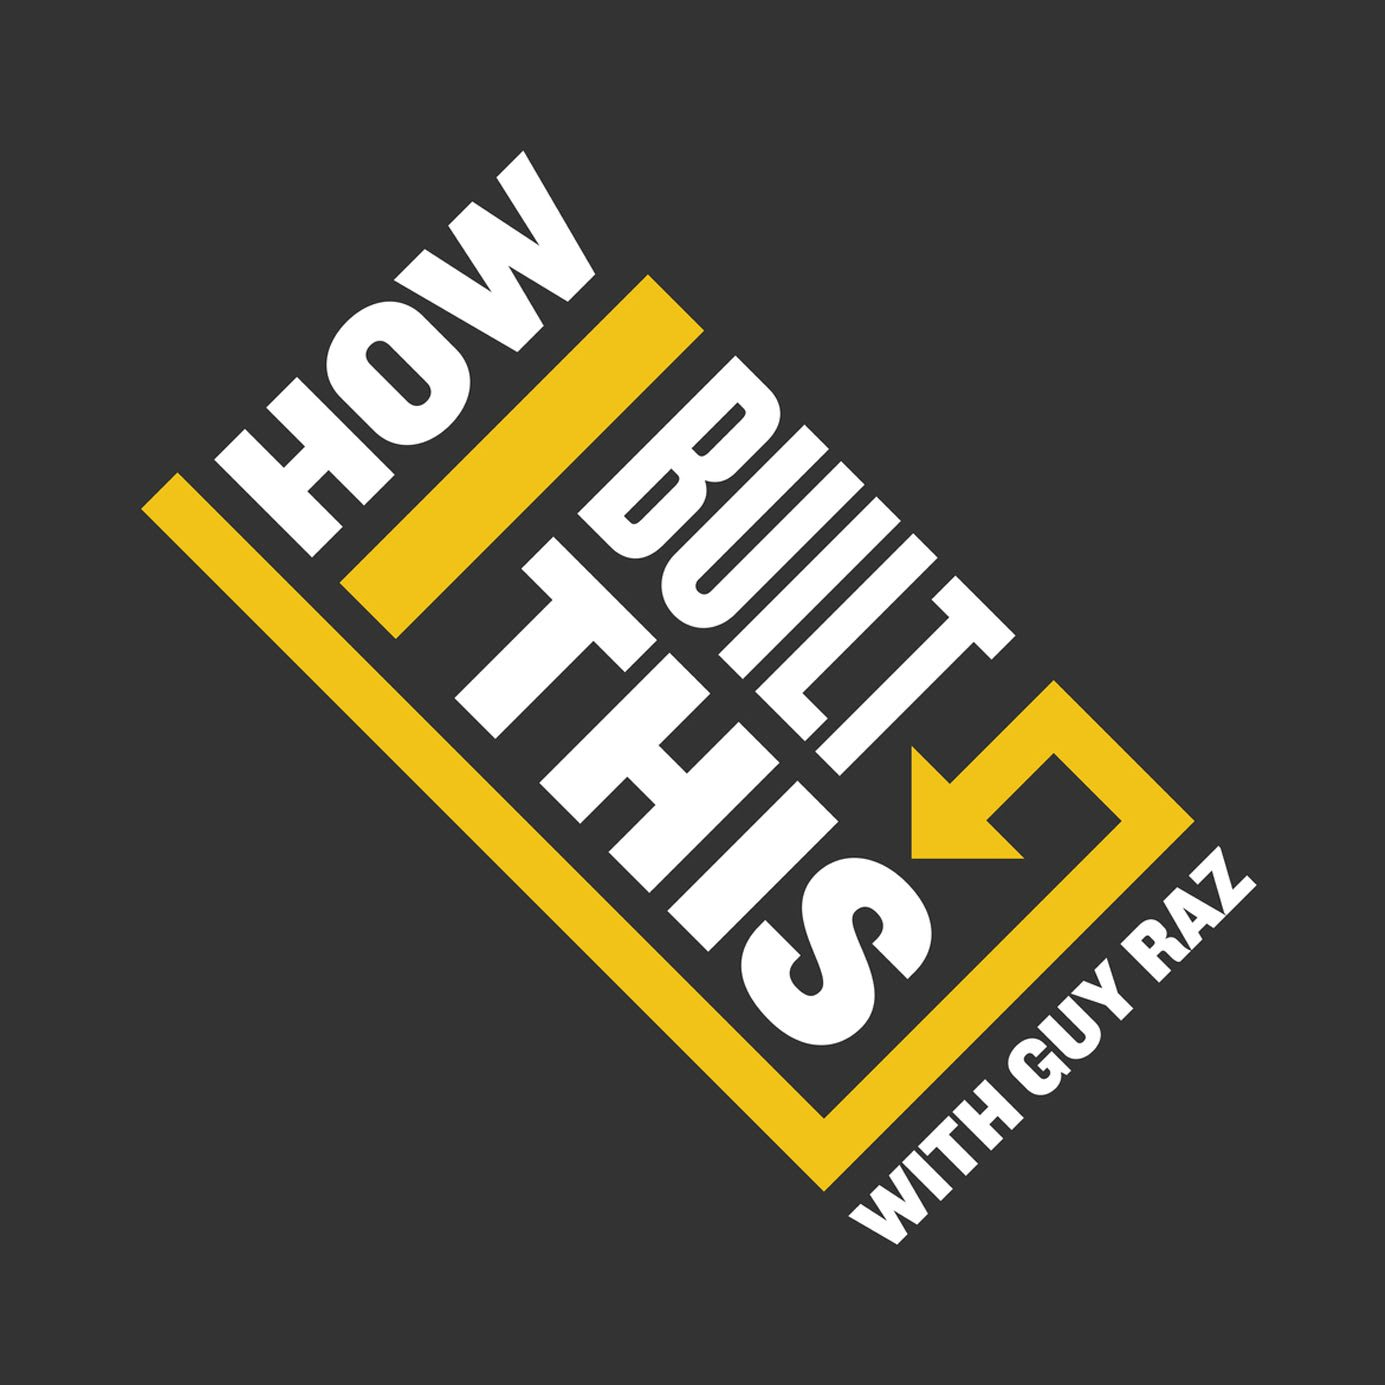 The logo of the podcast show How I built this with guy Raz. Business Podcasts, GamePlan A, adidas